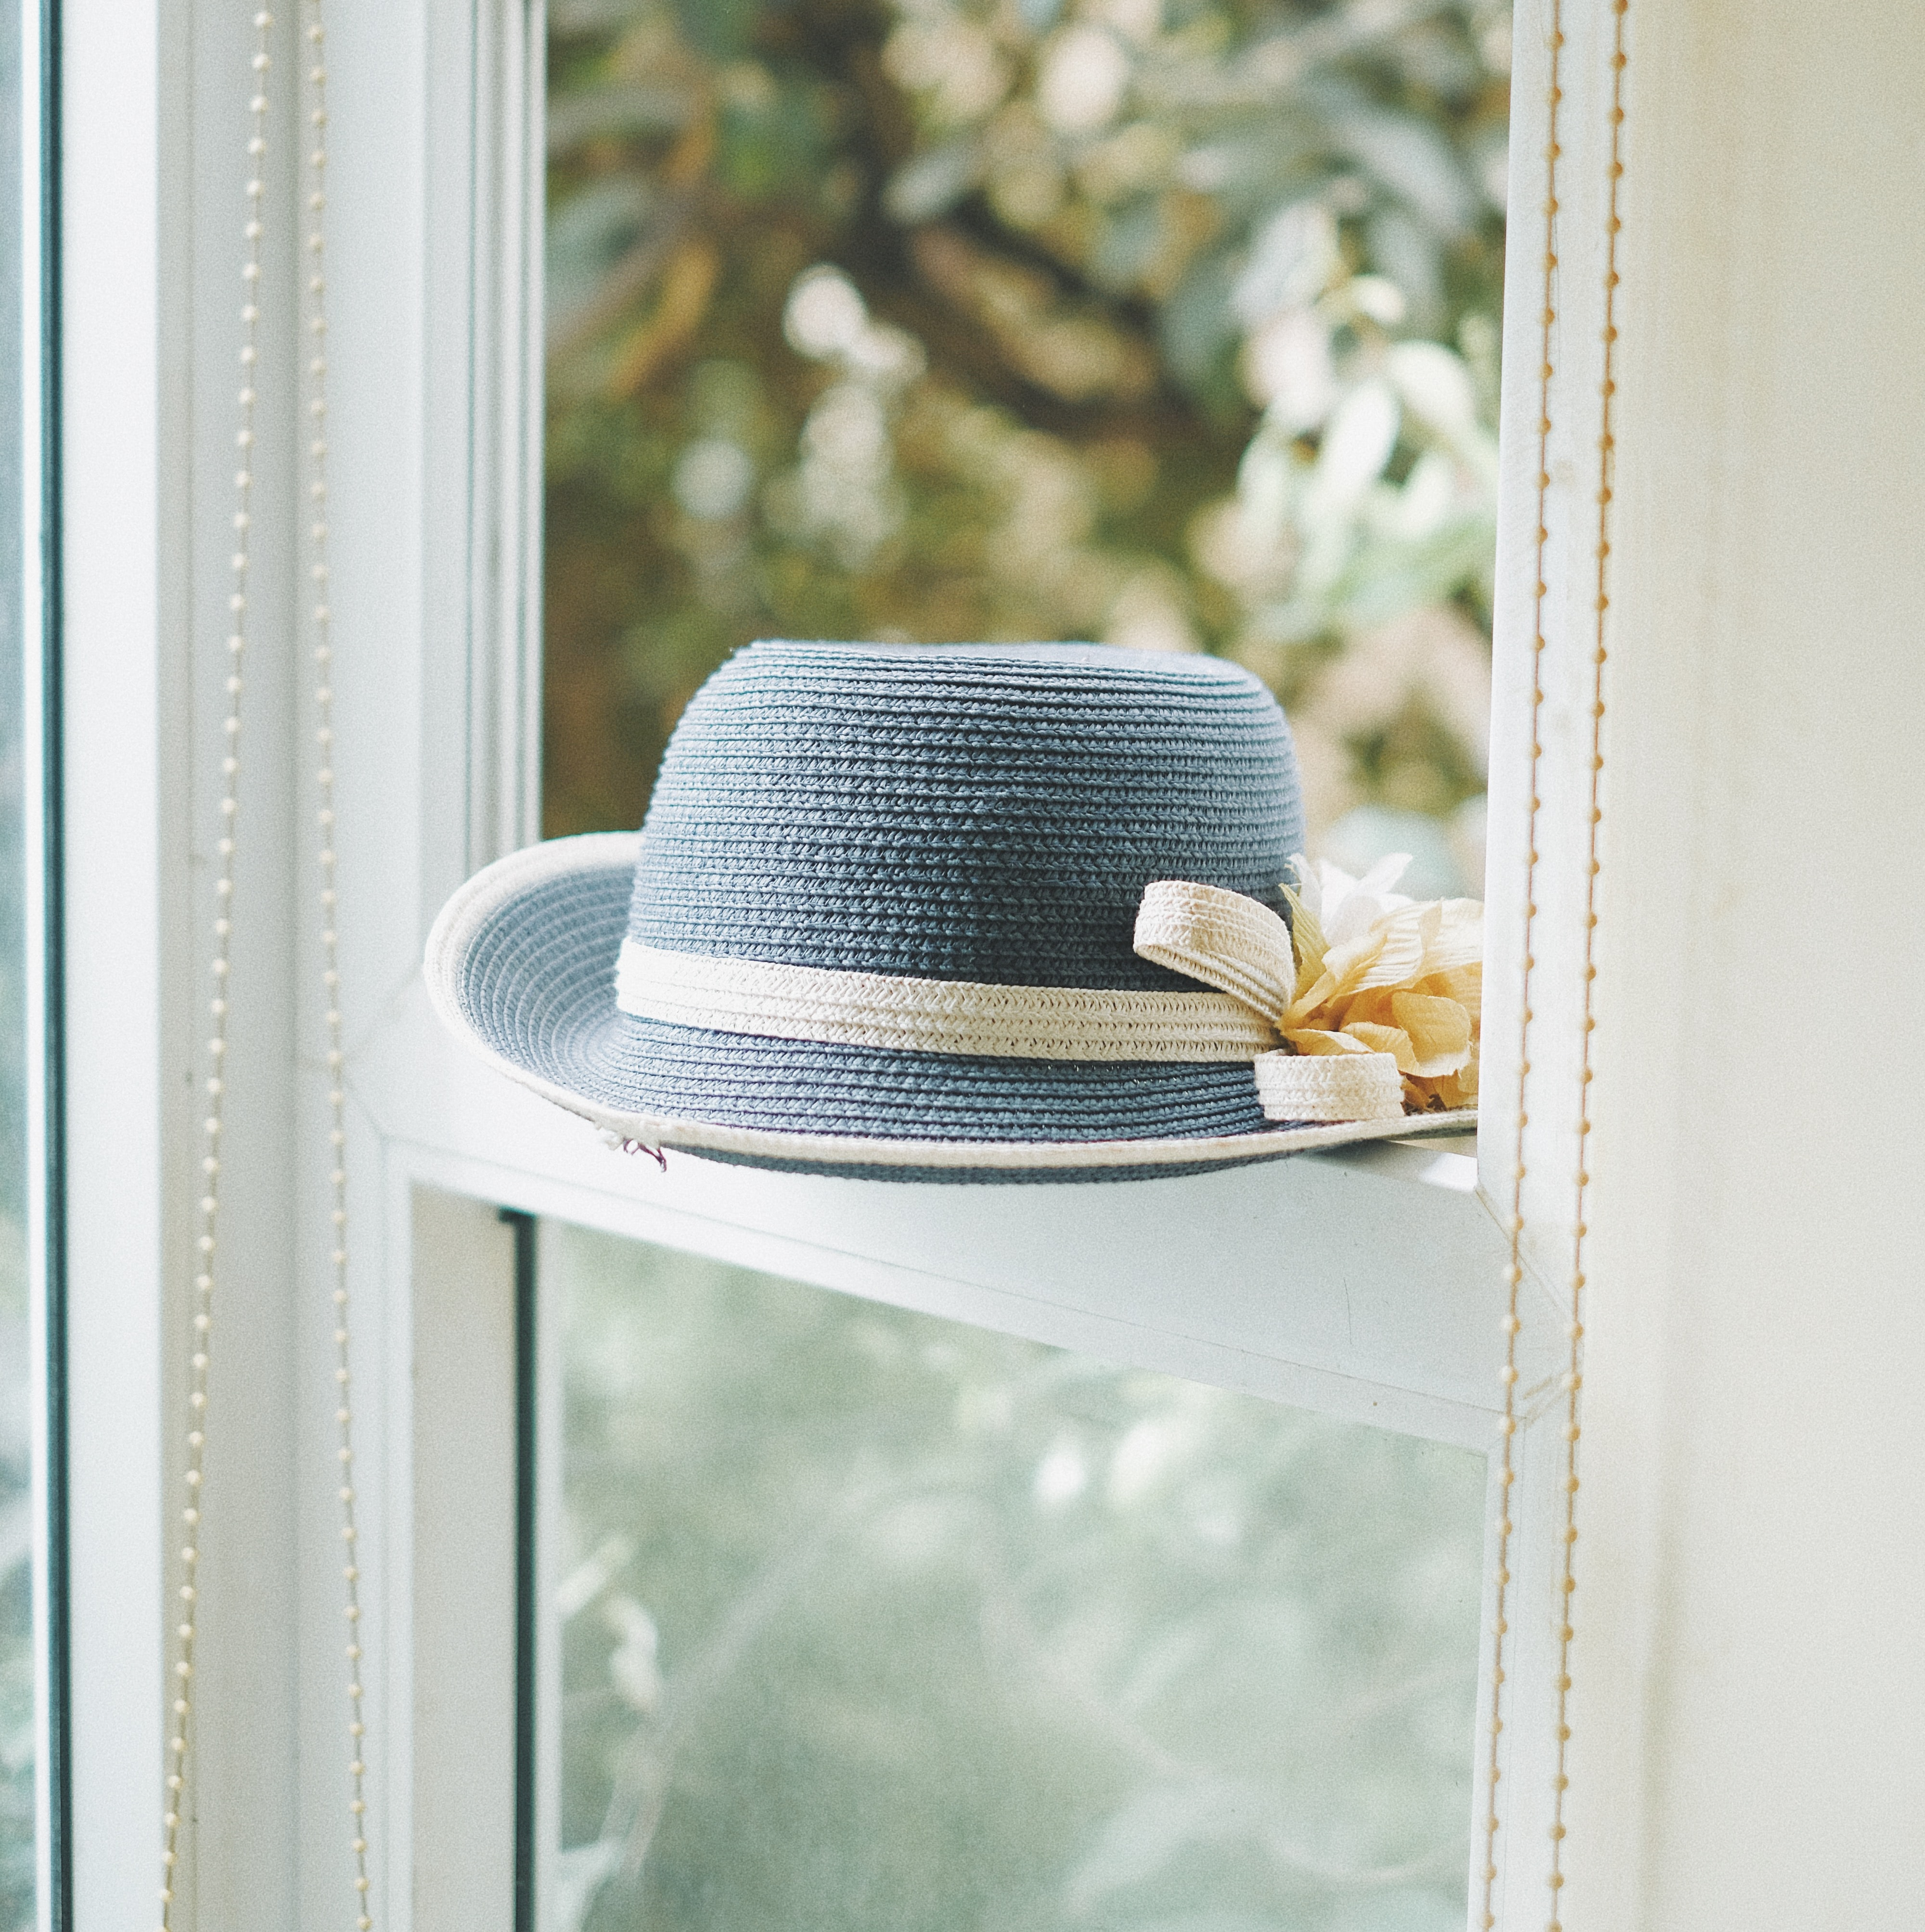 grey knitted hat on window